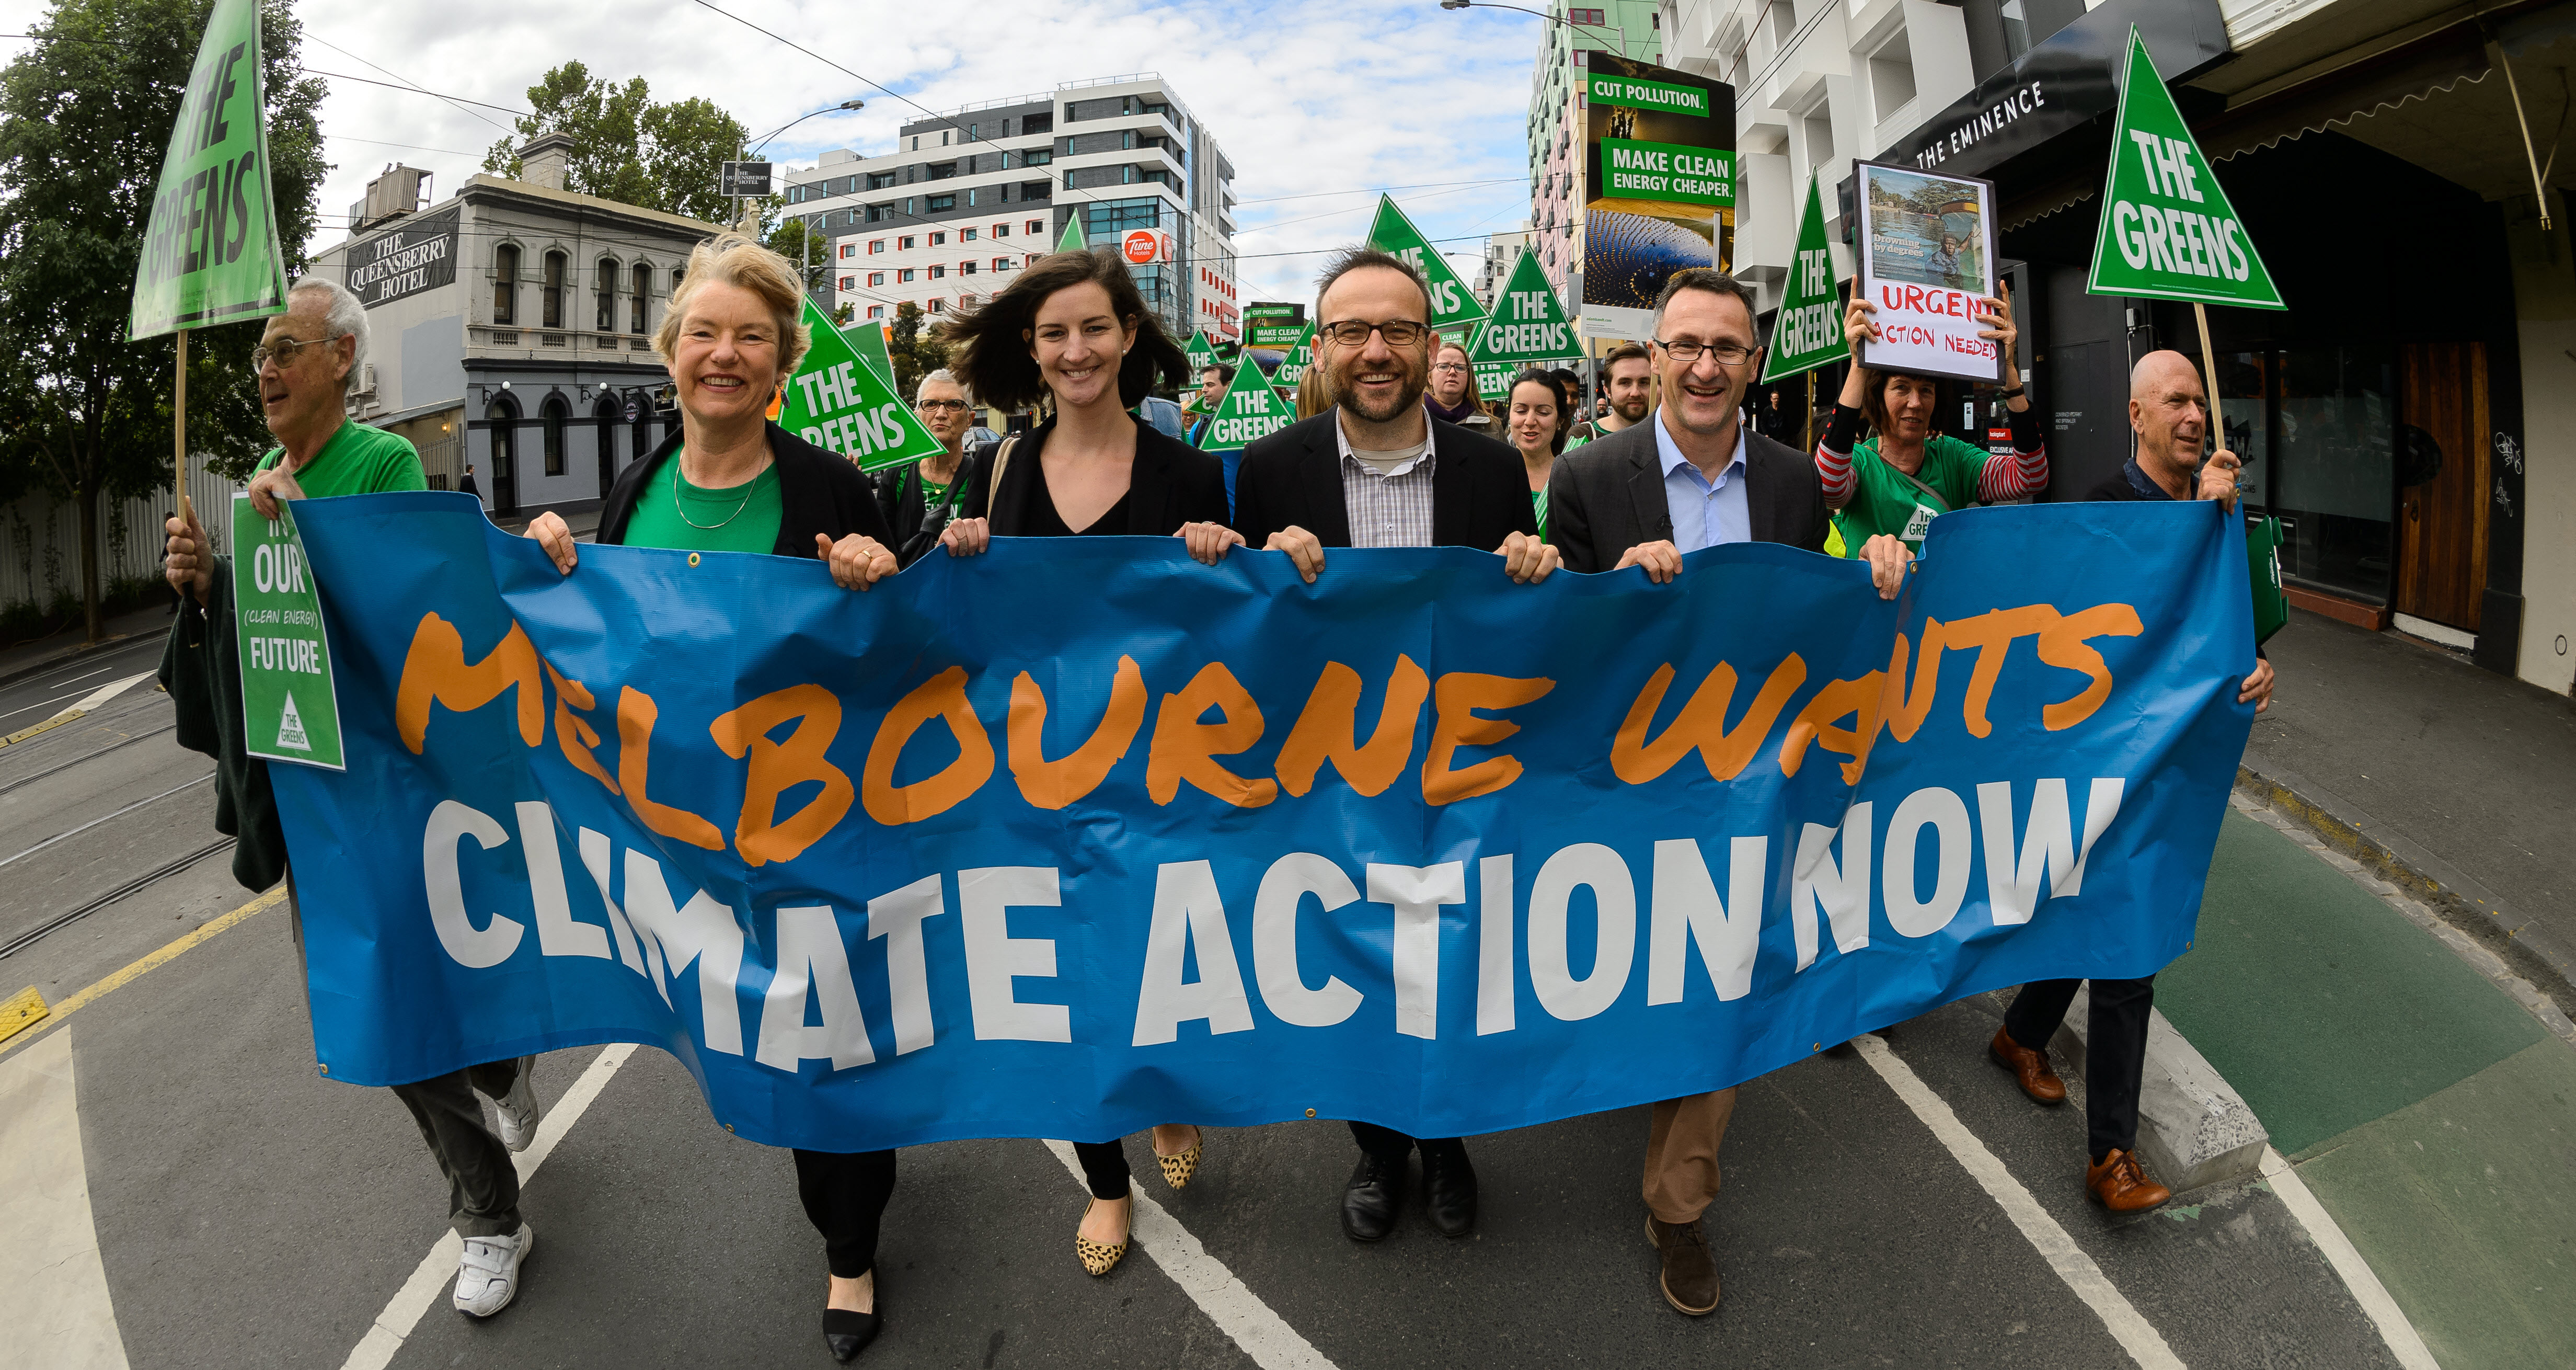 Climate_March_271115_Melbourne__attending_rally__famous_people_shortened.jpg